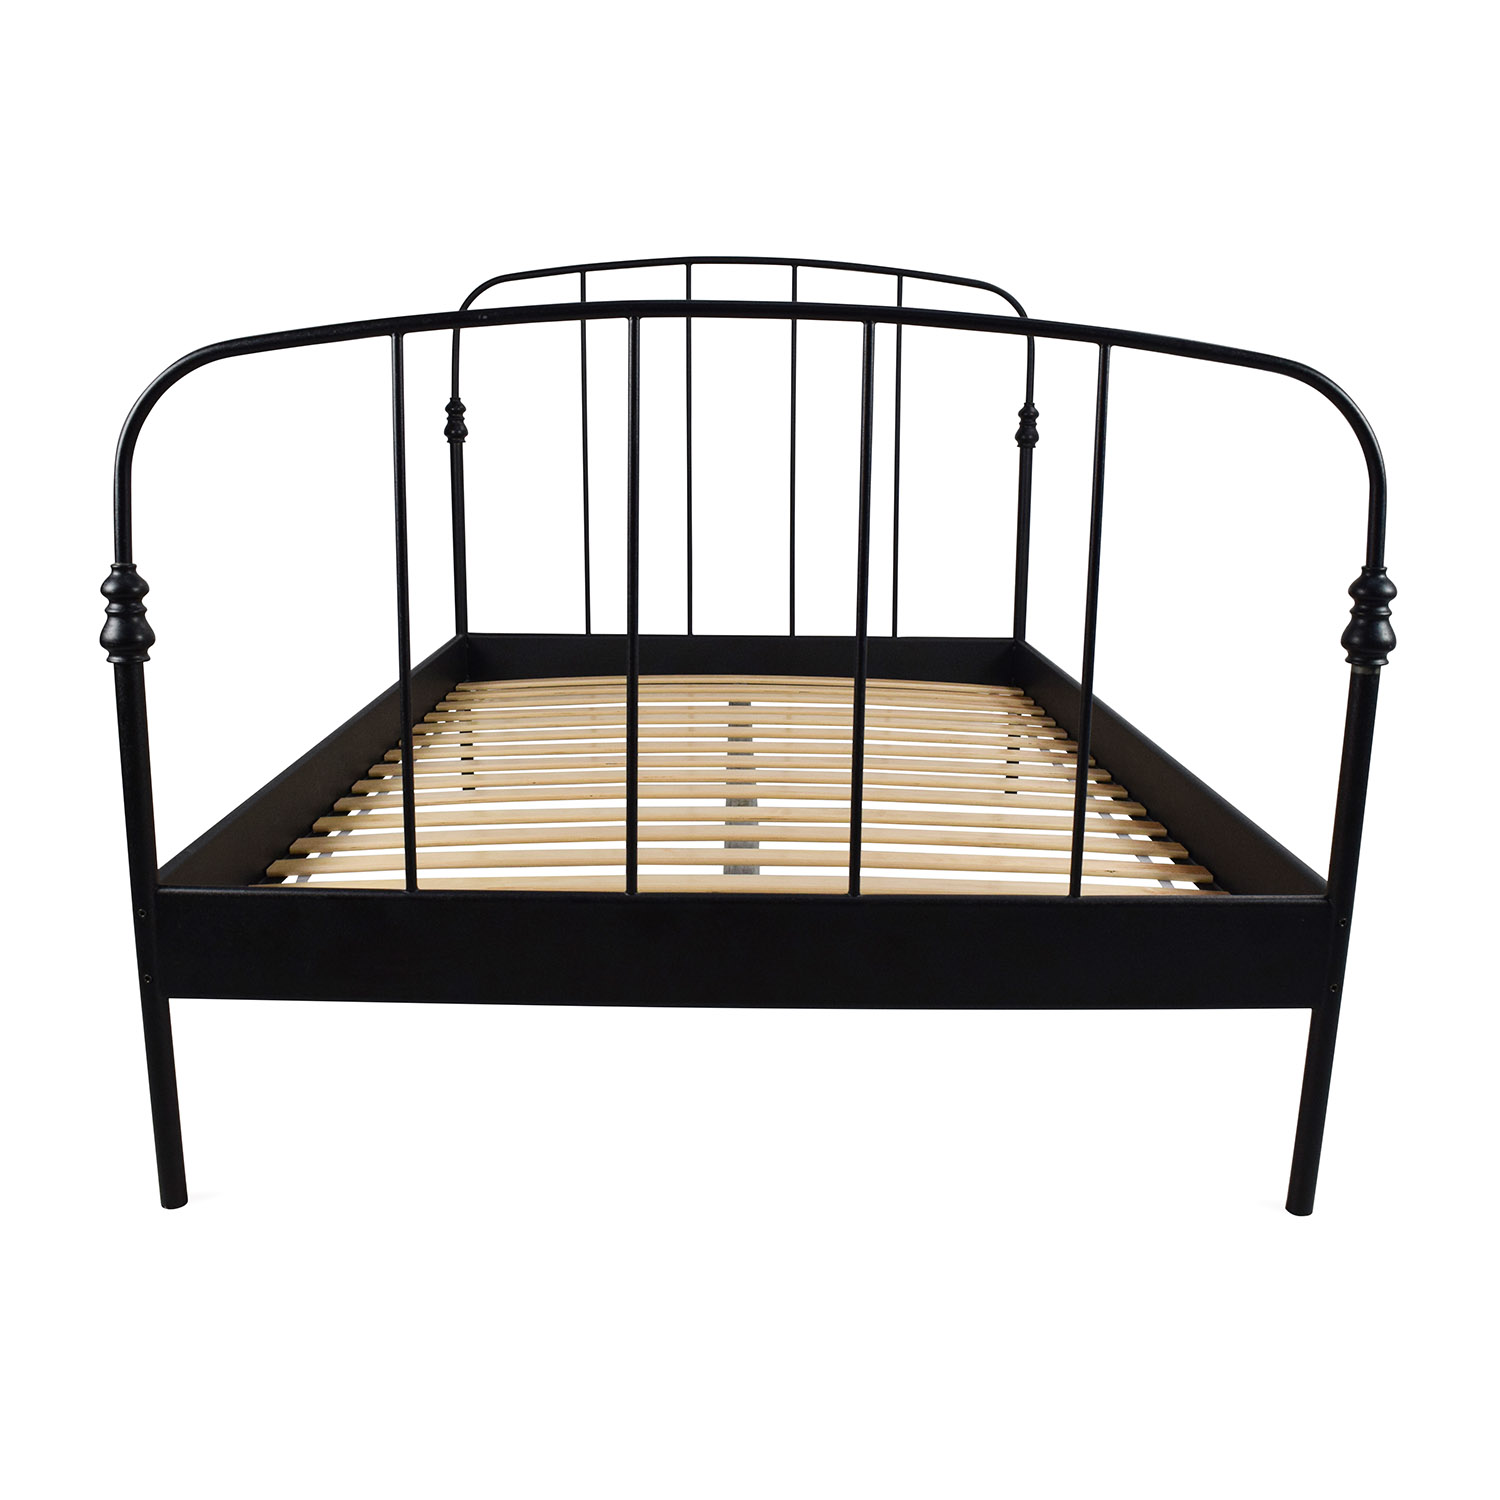 Ikea Iron Bed 62 Off Ikea Ikea Svelvik Full Size Black Bed Frame Beds